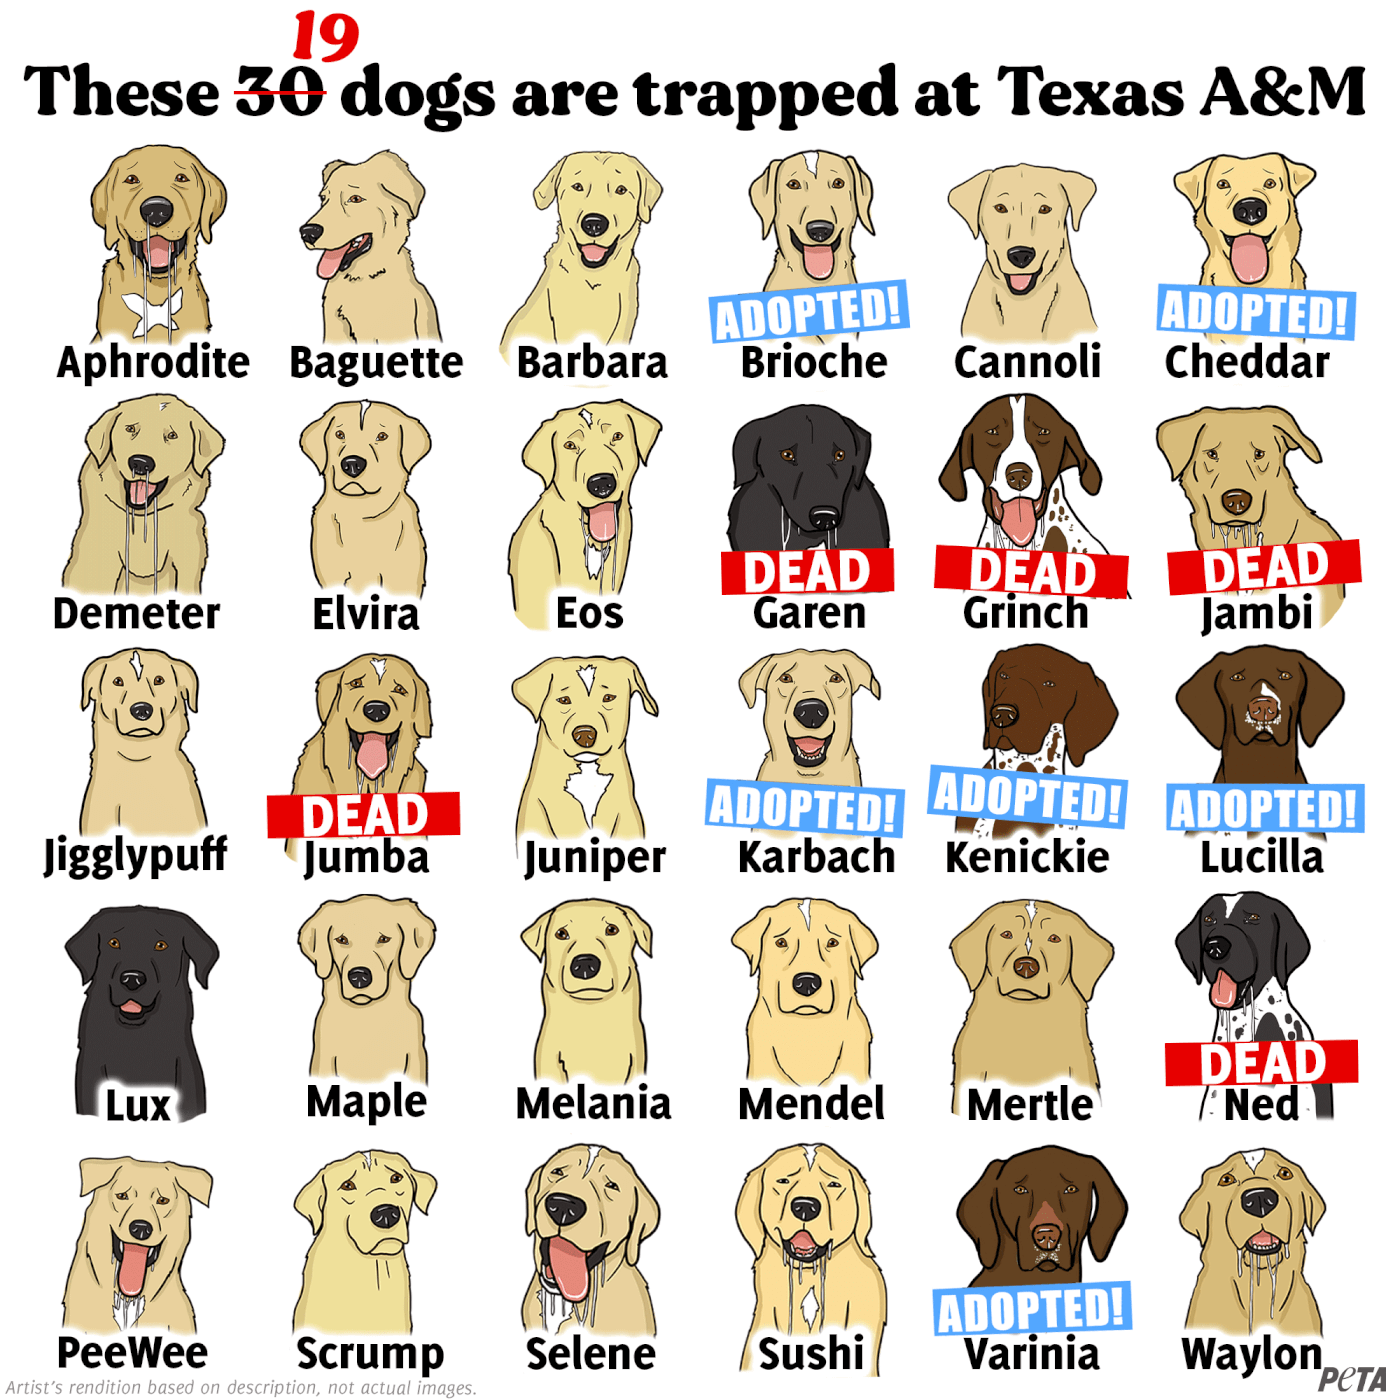 photo of graphic showing dogs